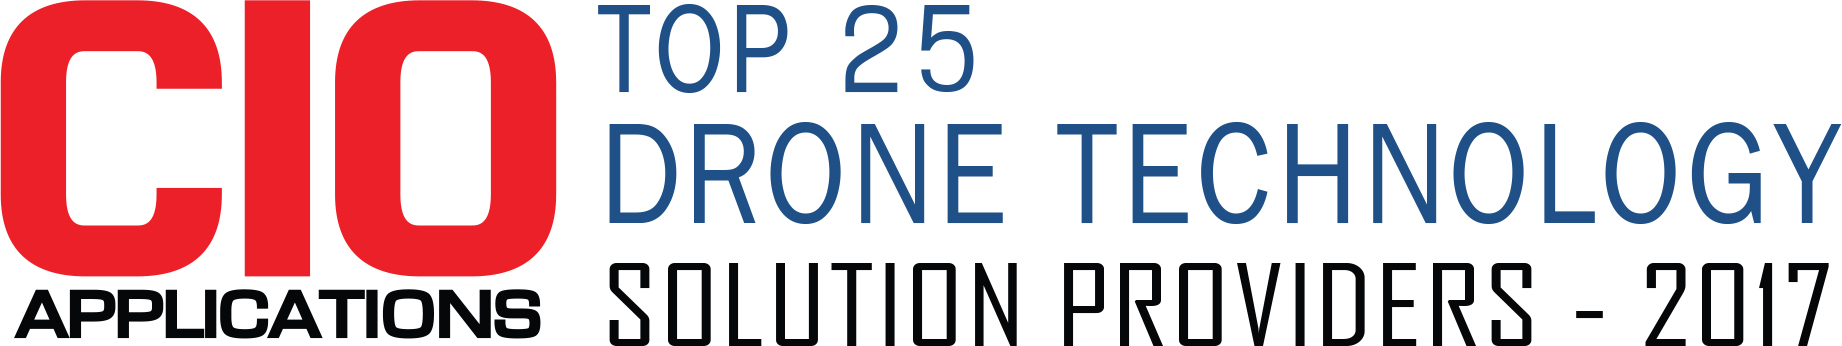 Top Companies Providing Drone Technology Solution